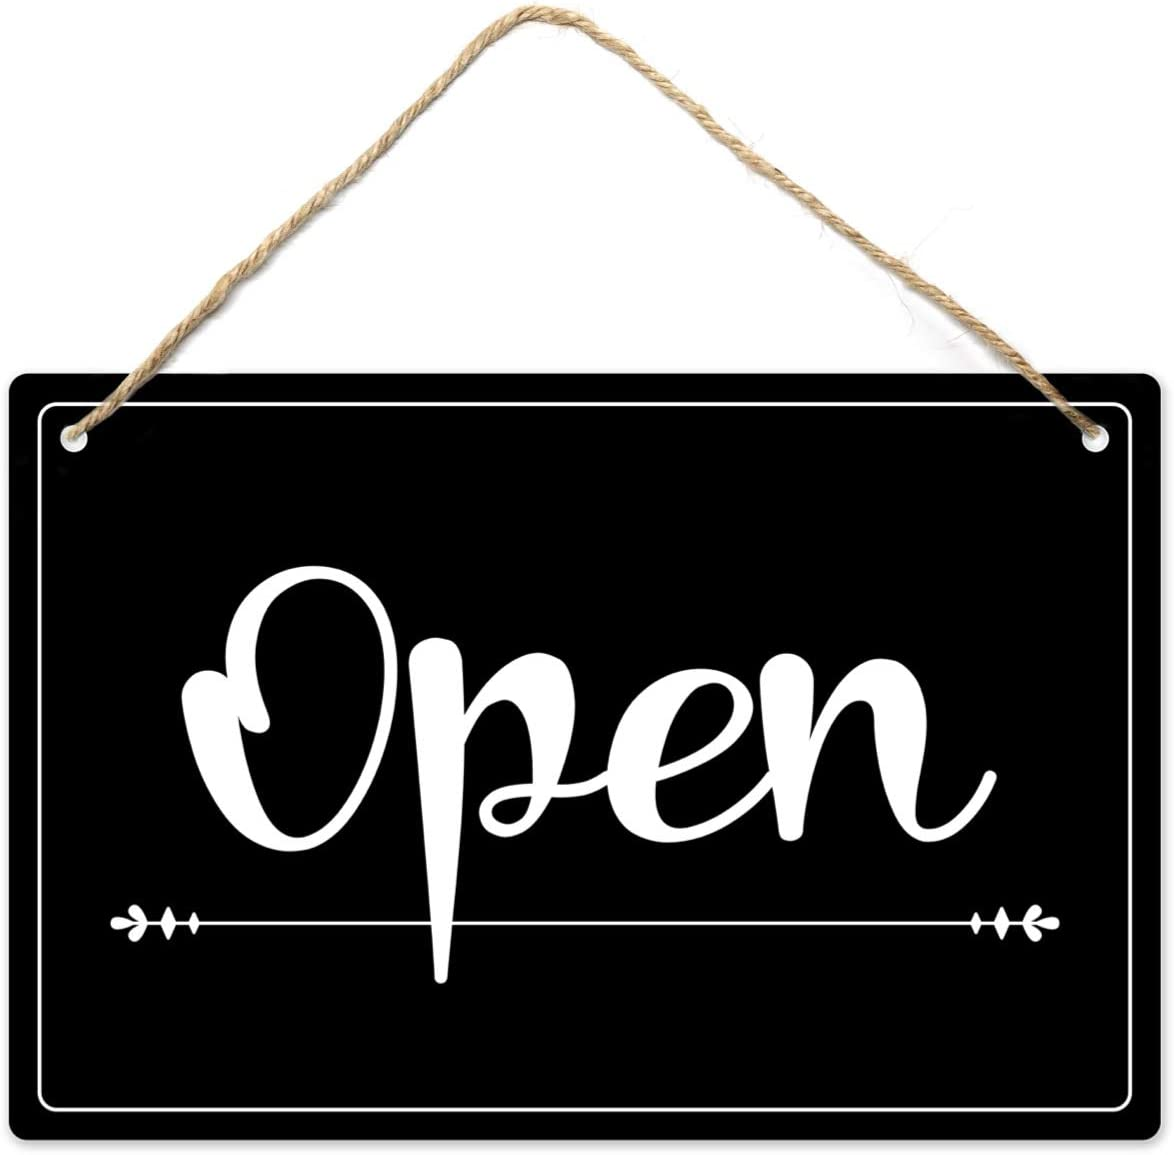 Open Closed Sign, 12″x8″ PVC Plastic Double Sided Hanging Sign, High Precision Printing, Water Proof, Open and Closed Sign for Business, Retail Store Supplies, Open Sign, Closed Sign : Office Products